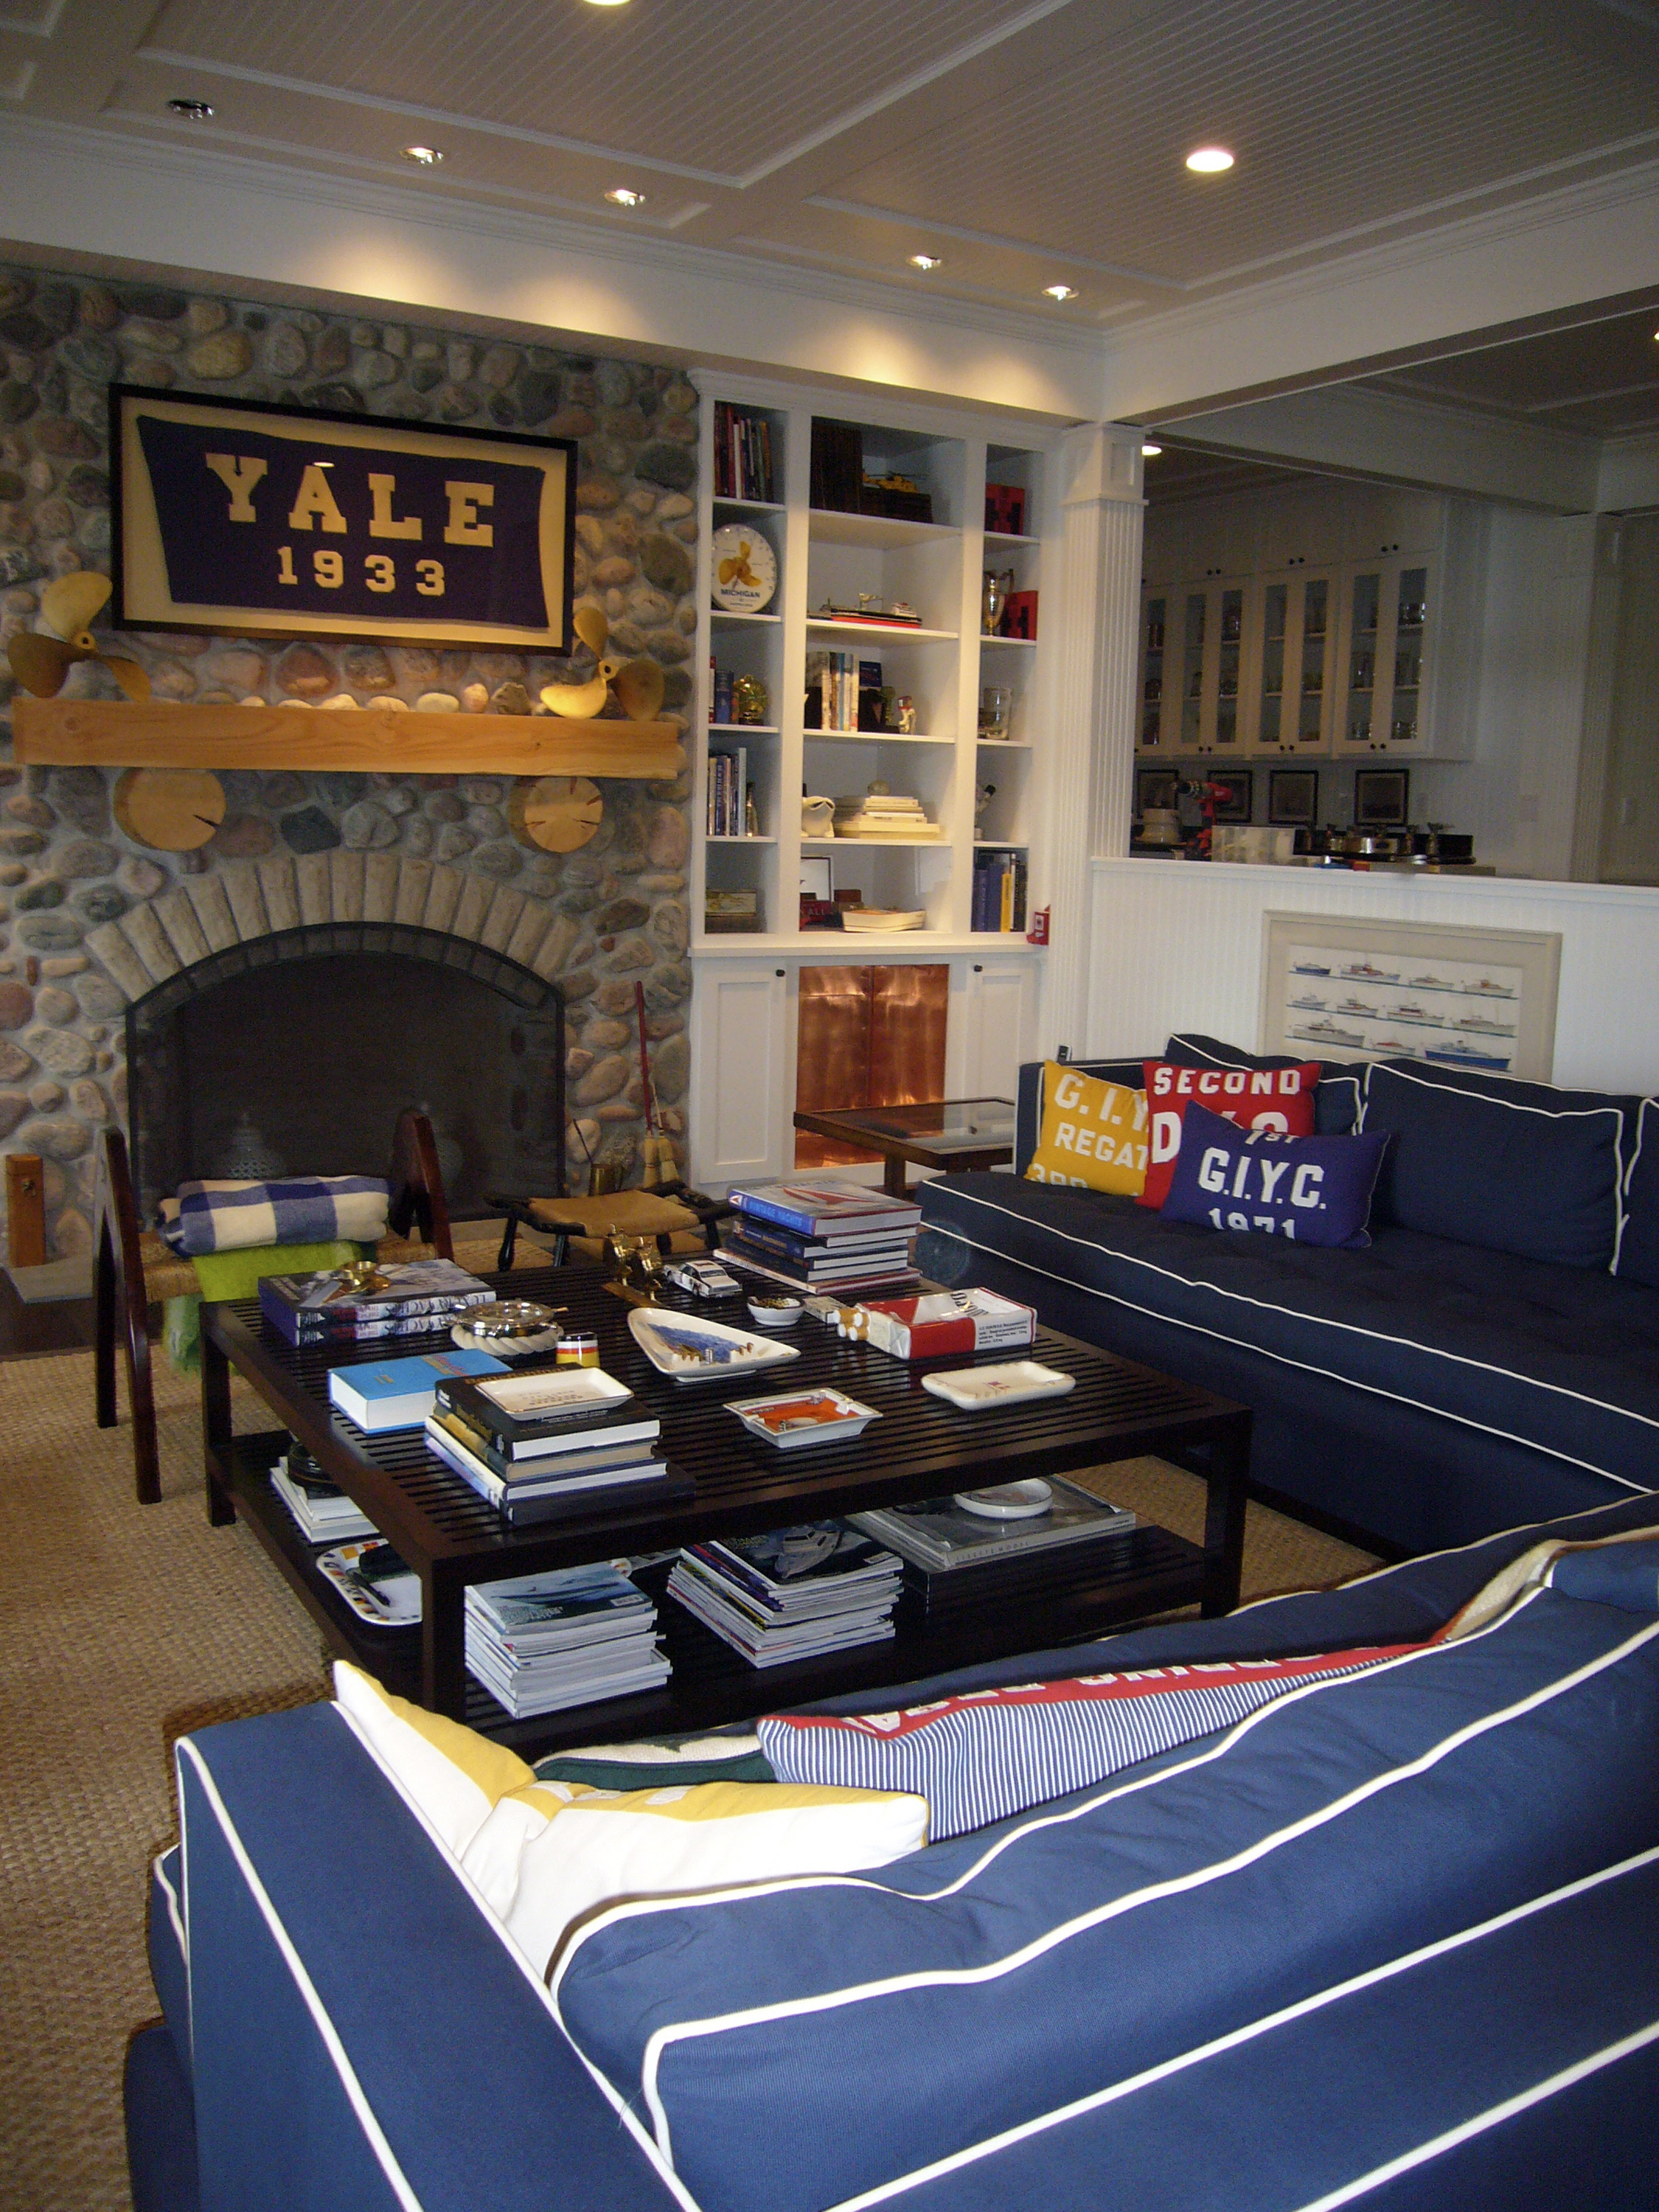 Style and team spirit can coexist in a family room  The Blade